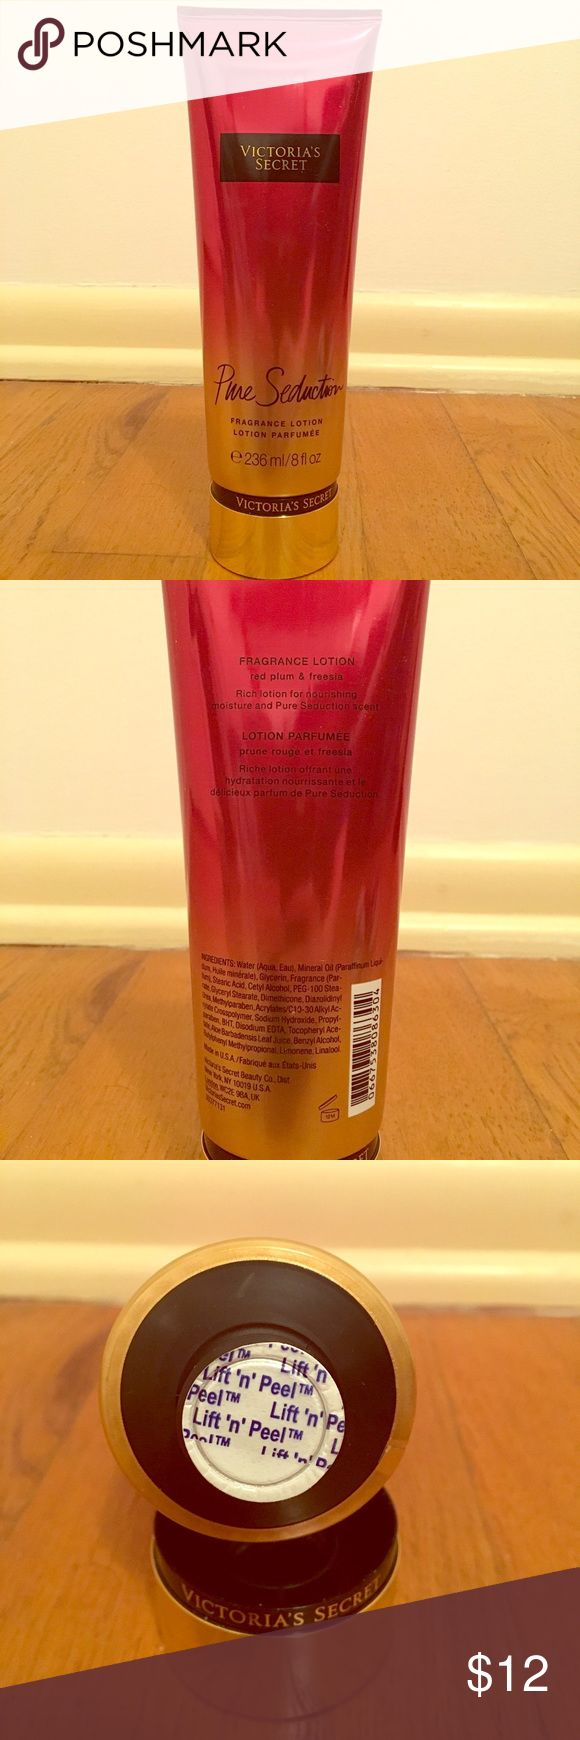 Victoria Secret lotion BRAND NEW VS lotion PINK Victoria's Secret Makeup